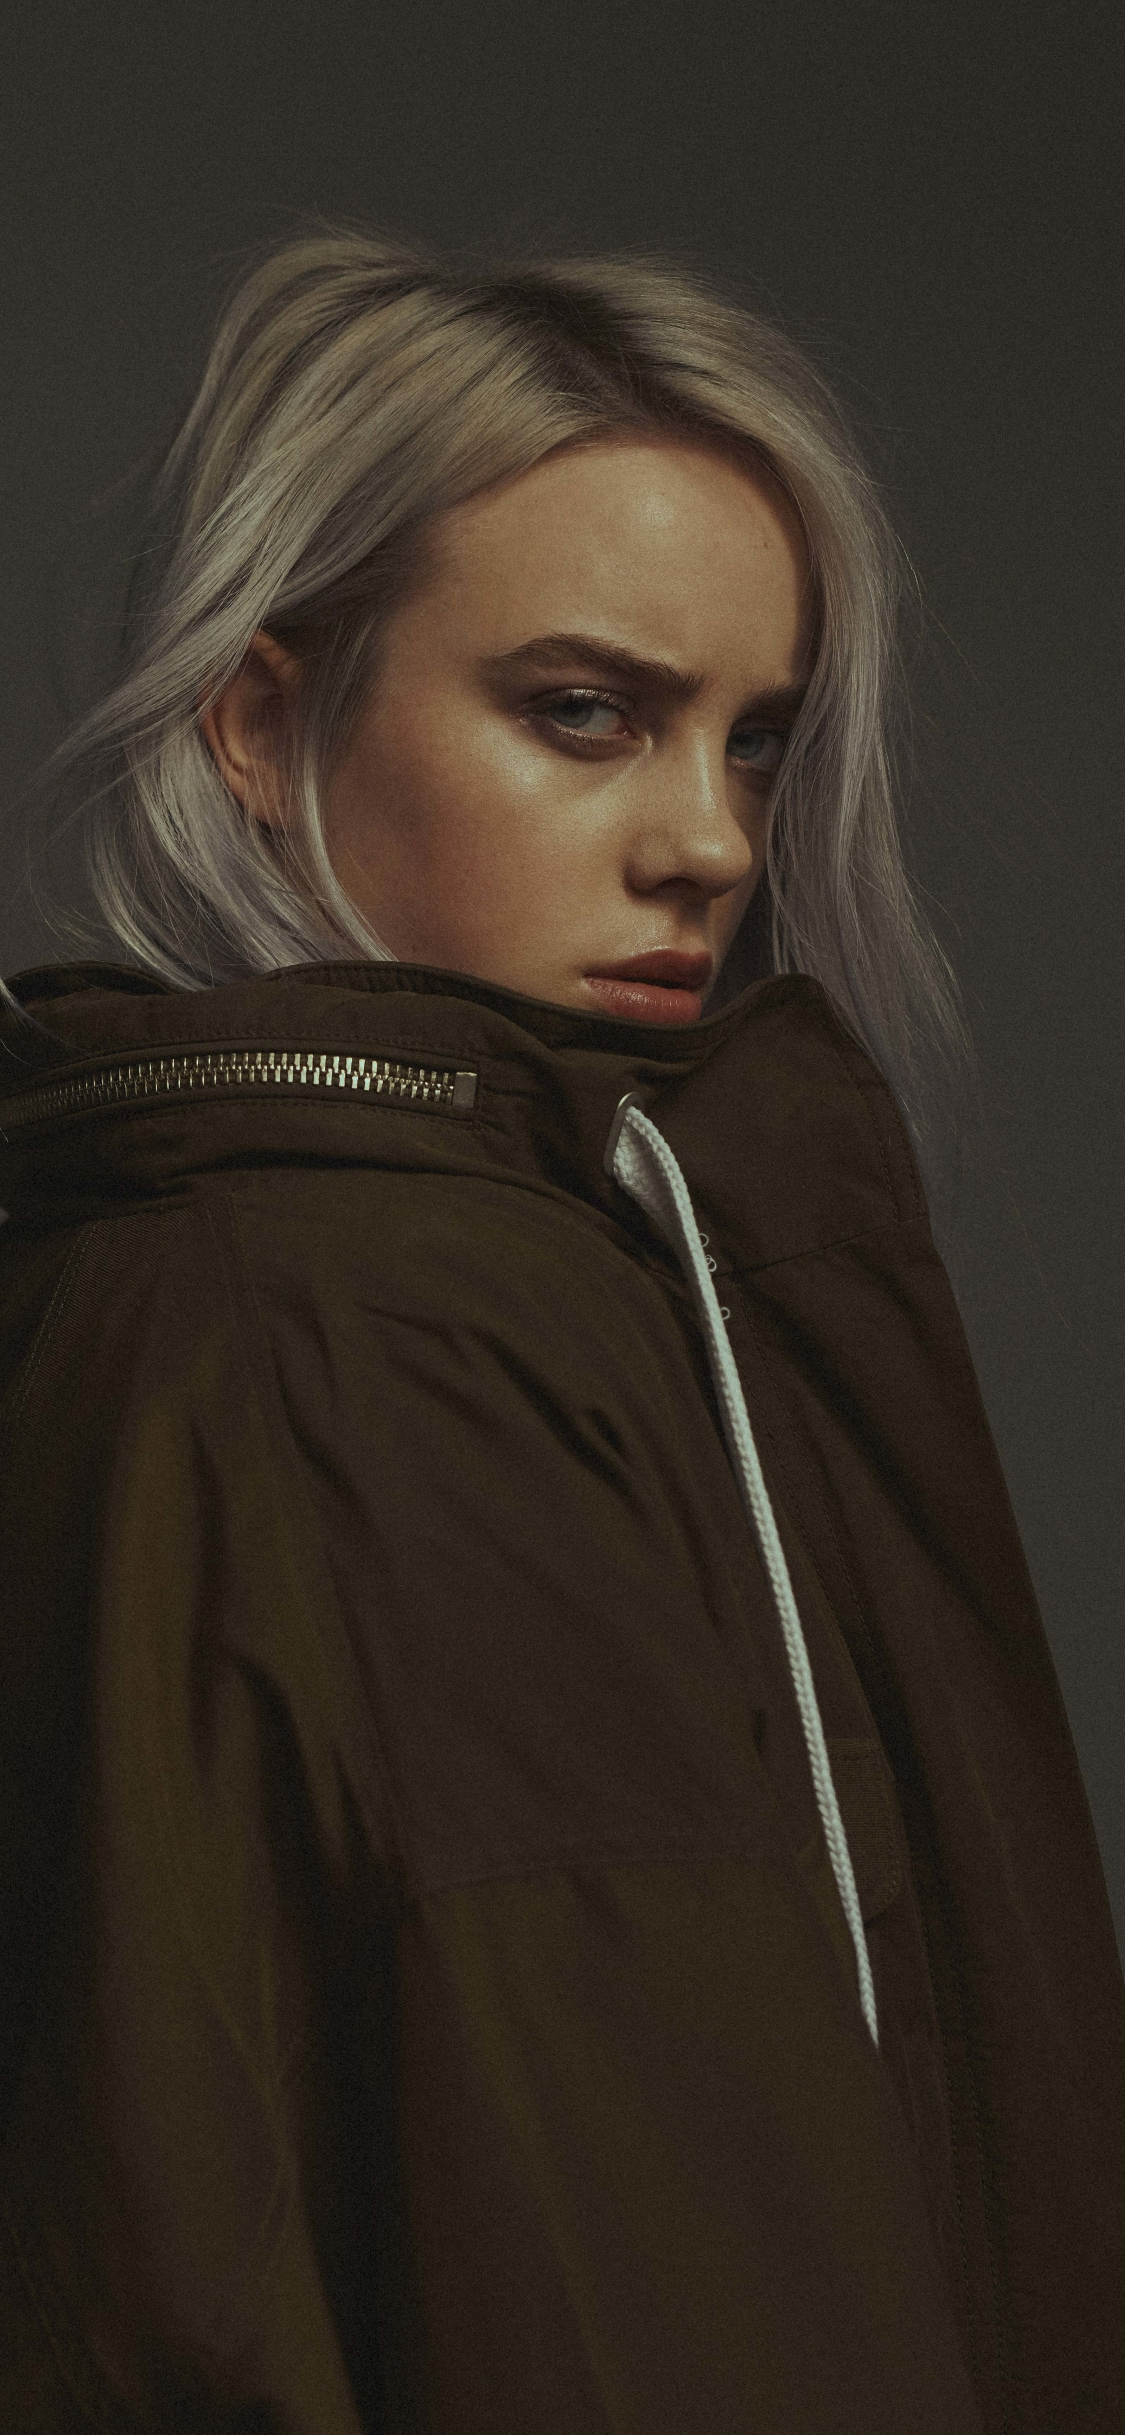 1125x2436 2019 Billie Eilish 4K Iphone XS,Iphone 10,Iphone ...